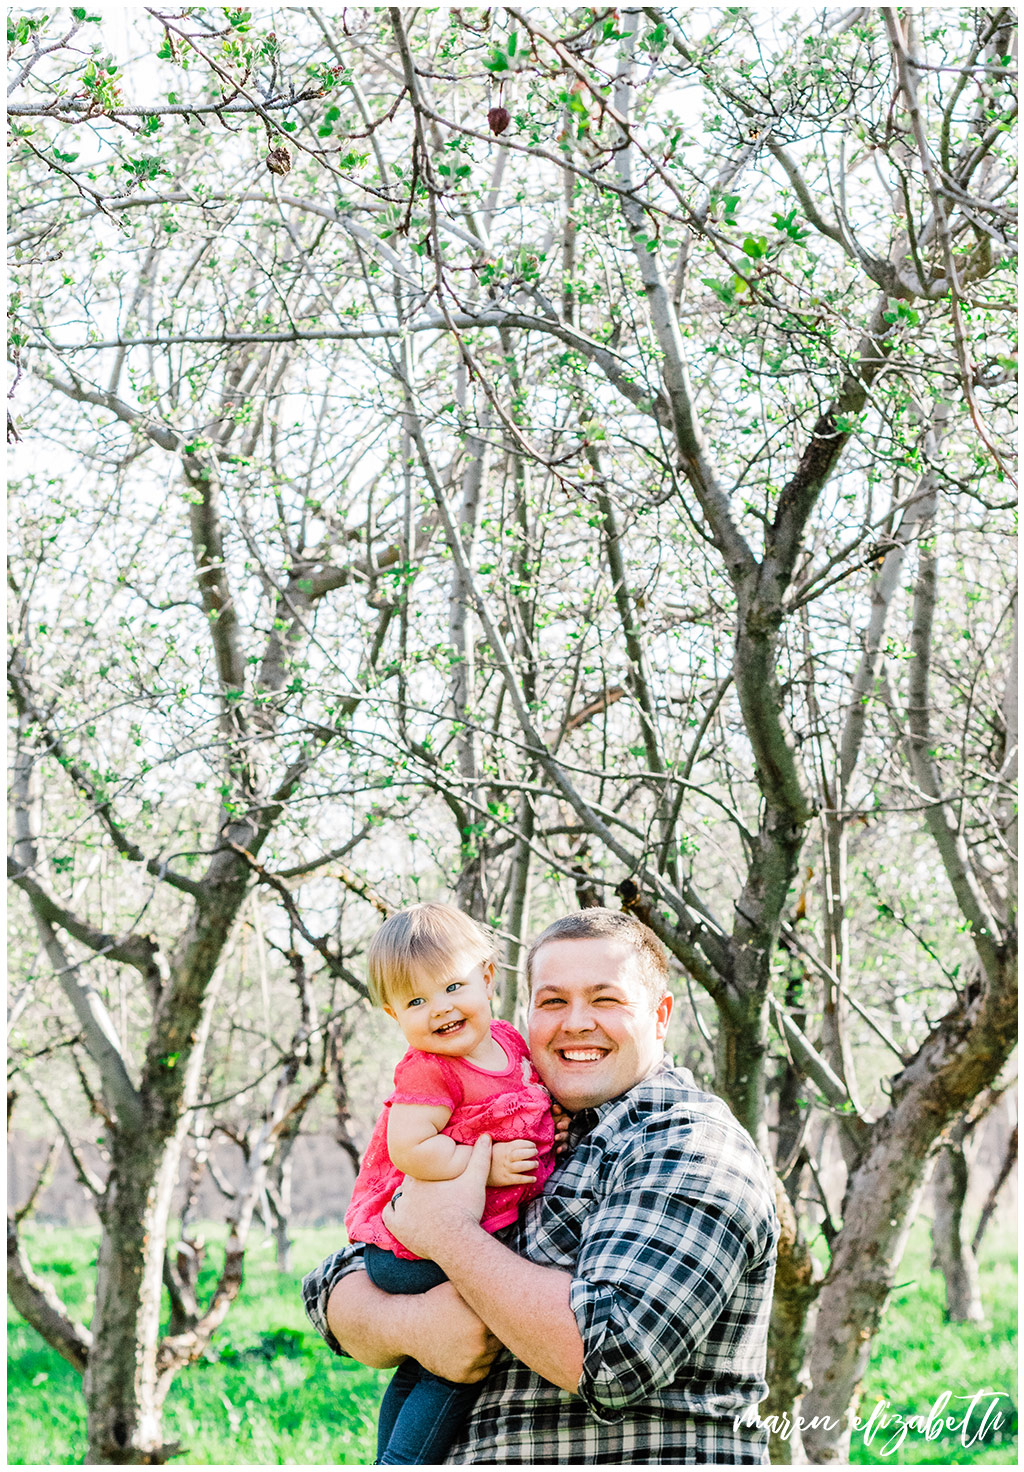 Daddy & Me mini session at the provo orchard with a toddler. I love taking pictures of toddlers because of their wiggly energy and huge personalities.   Gilbert Family Photographer   Maren Elizabeth Photography